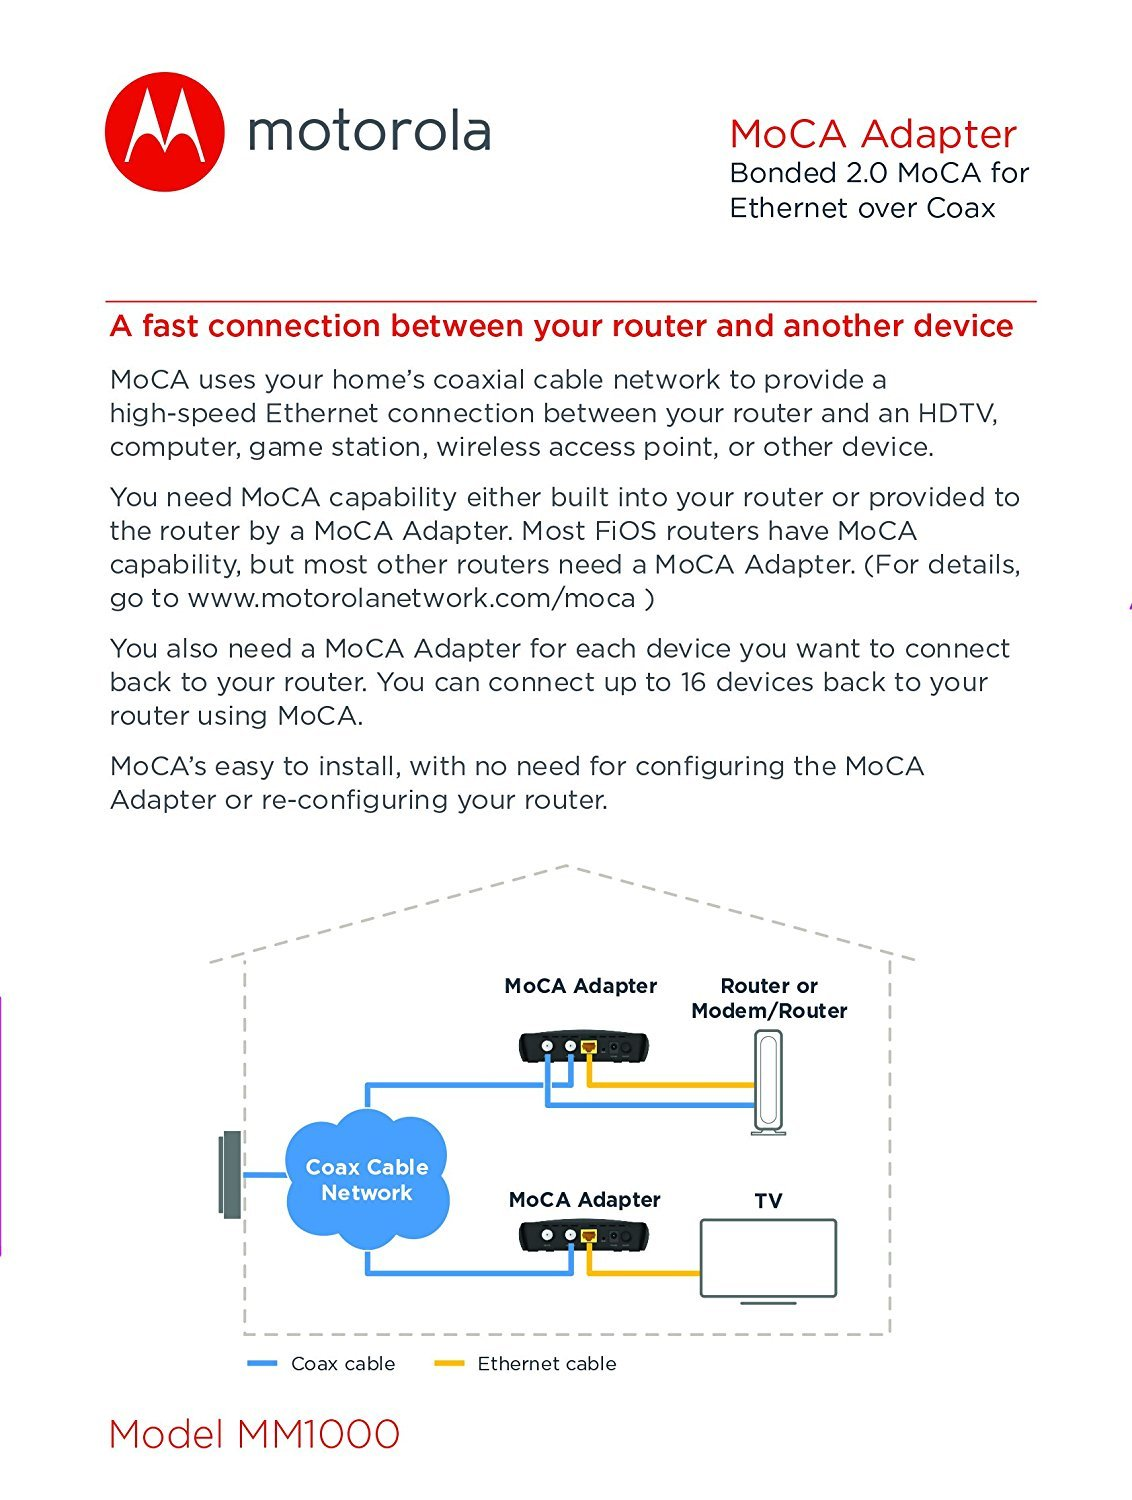 Motorola Ethernet Wiring Diagram Detailed Schematics Coaxial Cable Amazon Com Moca Adapter For Over Coax 1000 Mbps Crossover